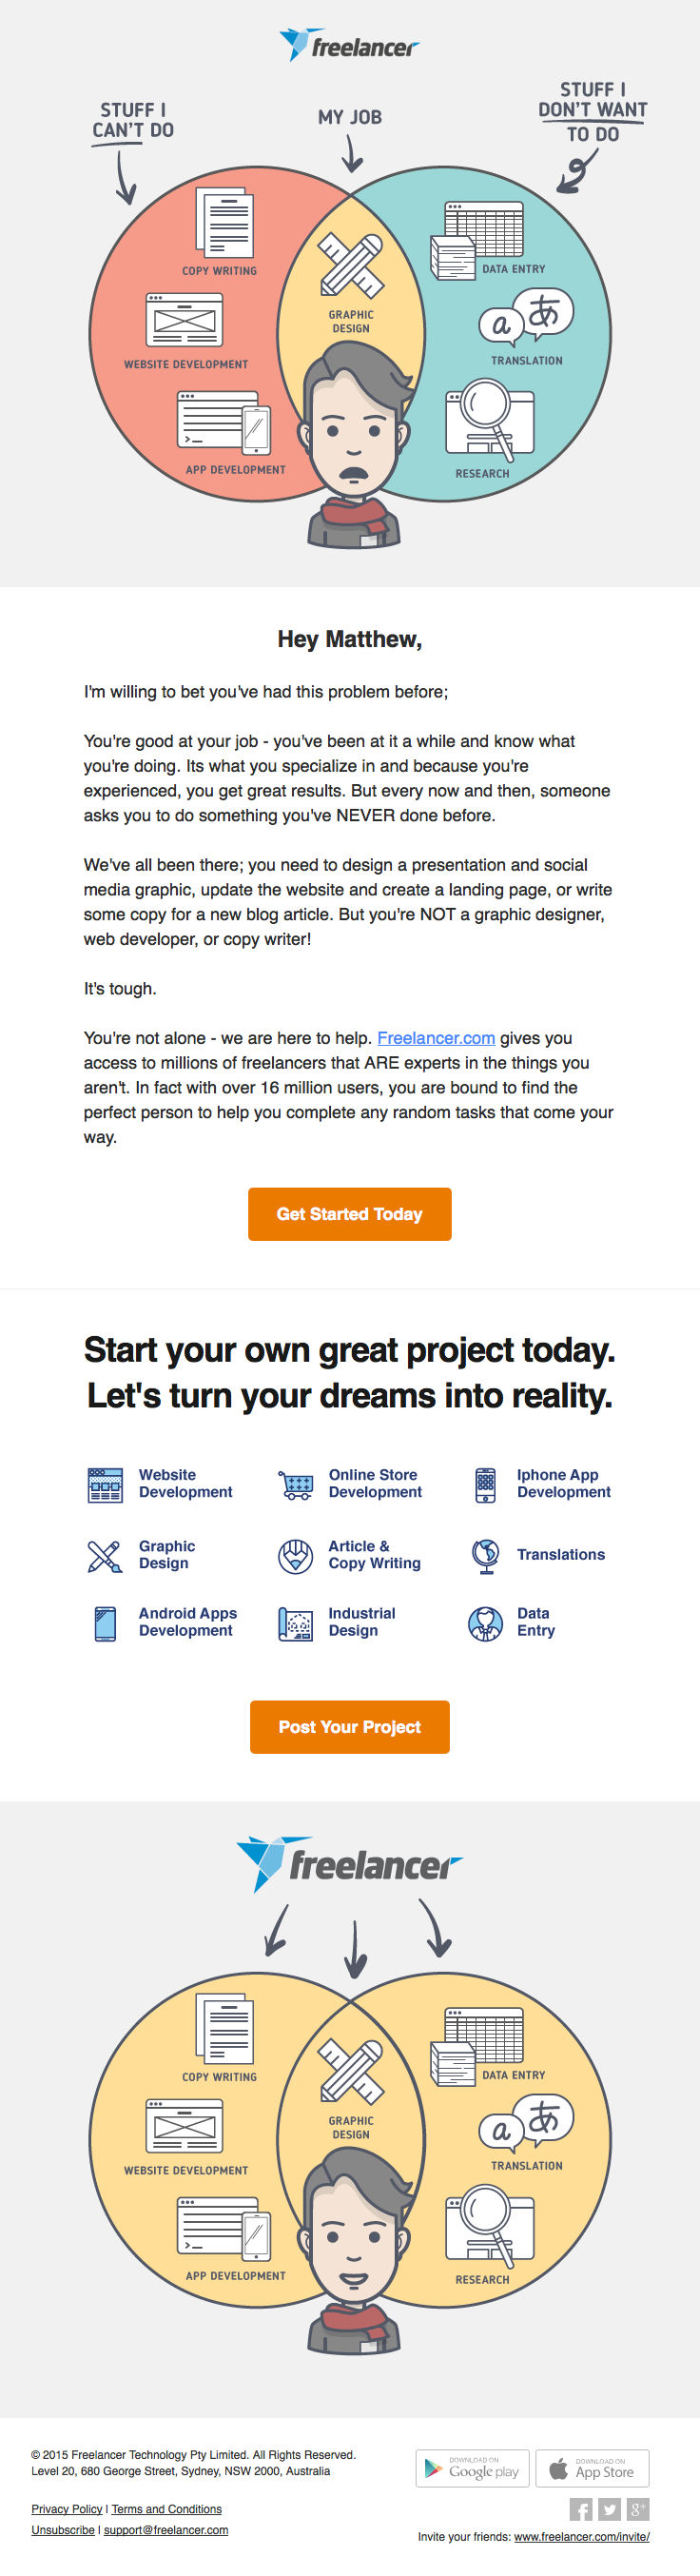 freelancercom sent this email with the subject line: Do your